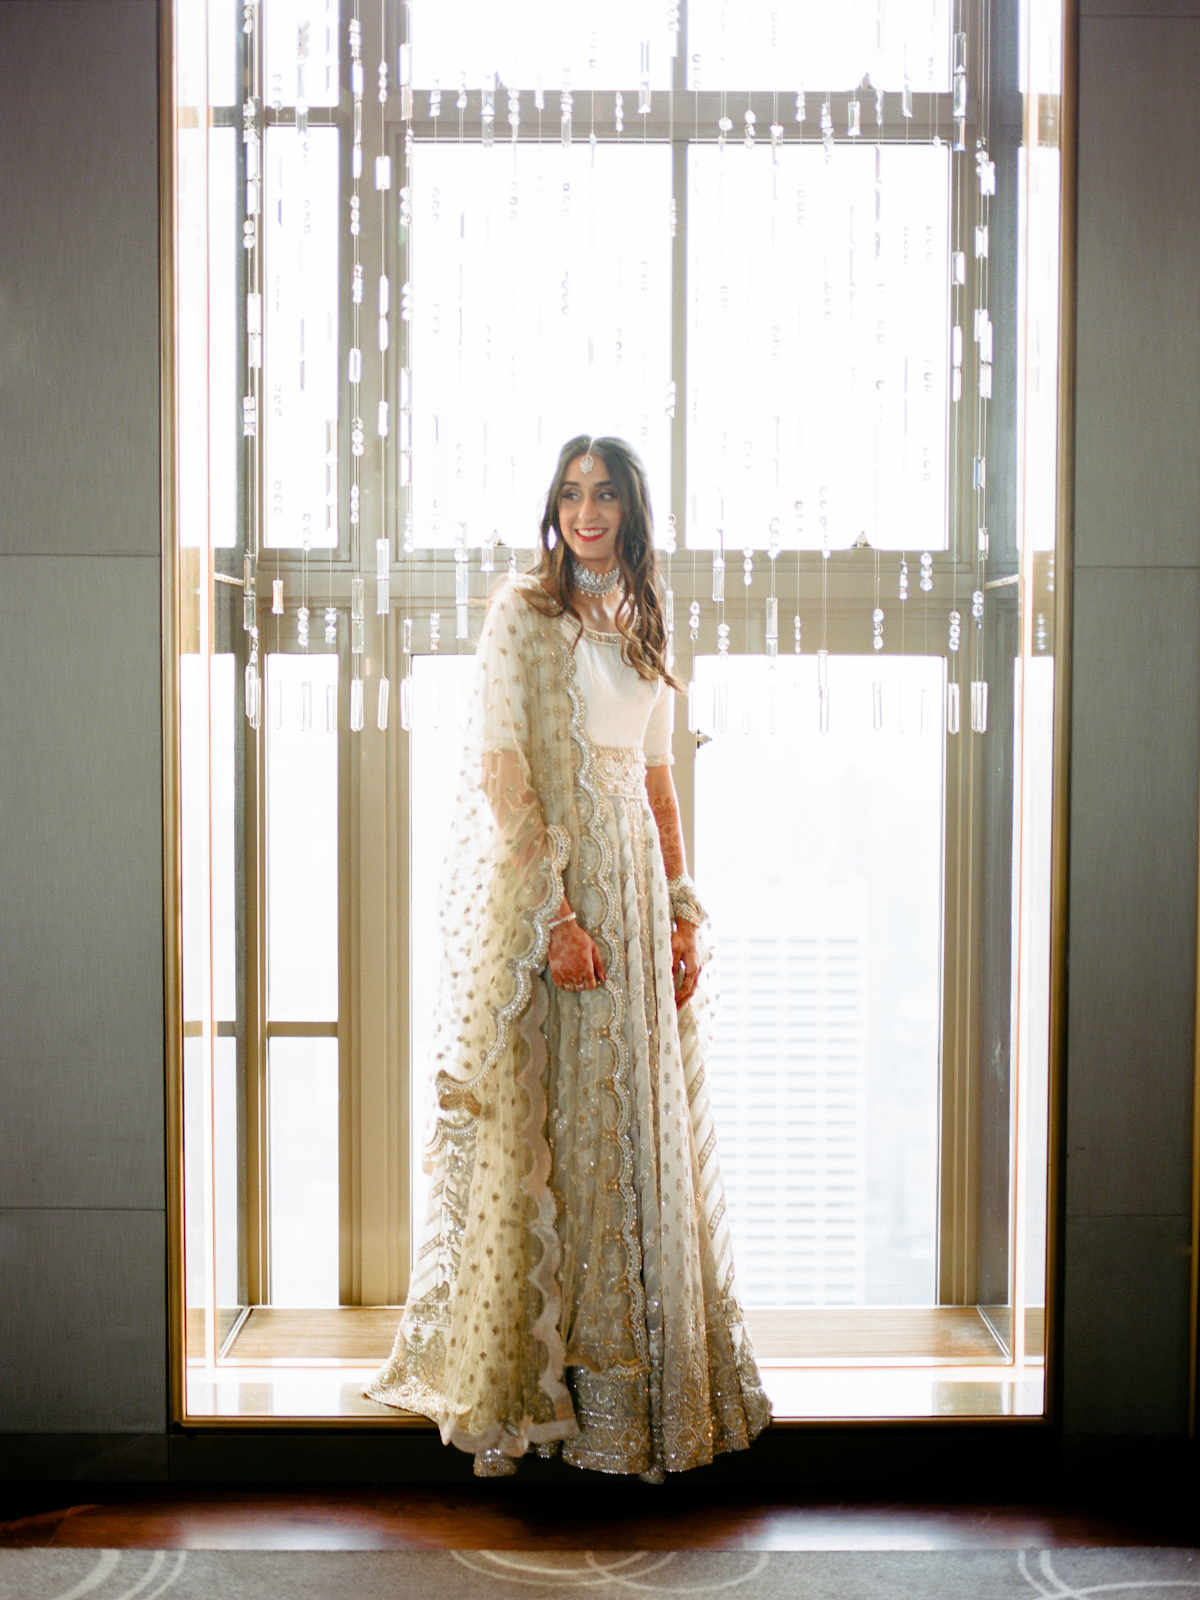 South asian bride at Rainbow Room wedding